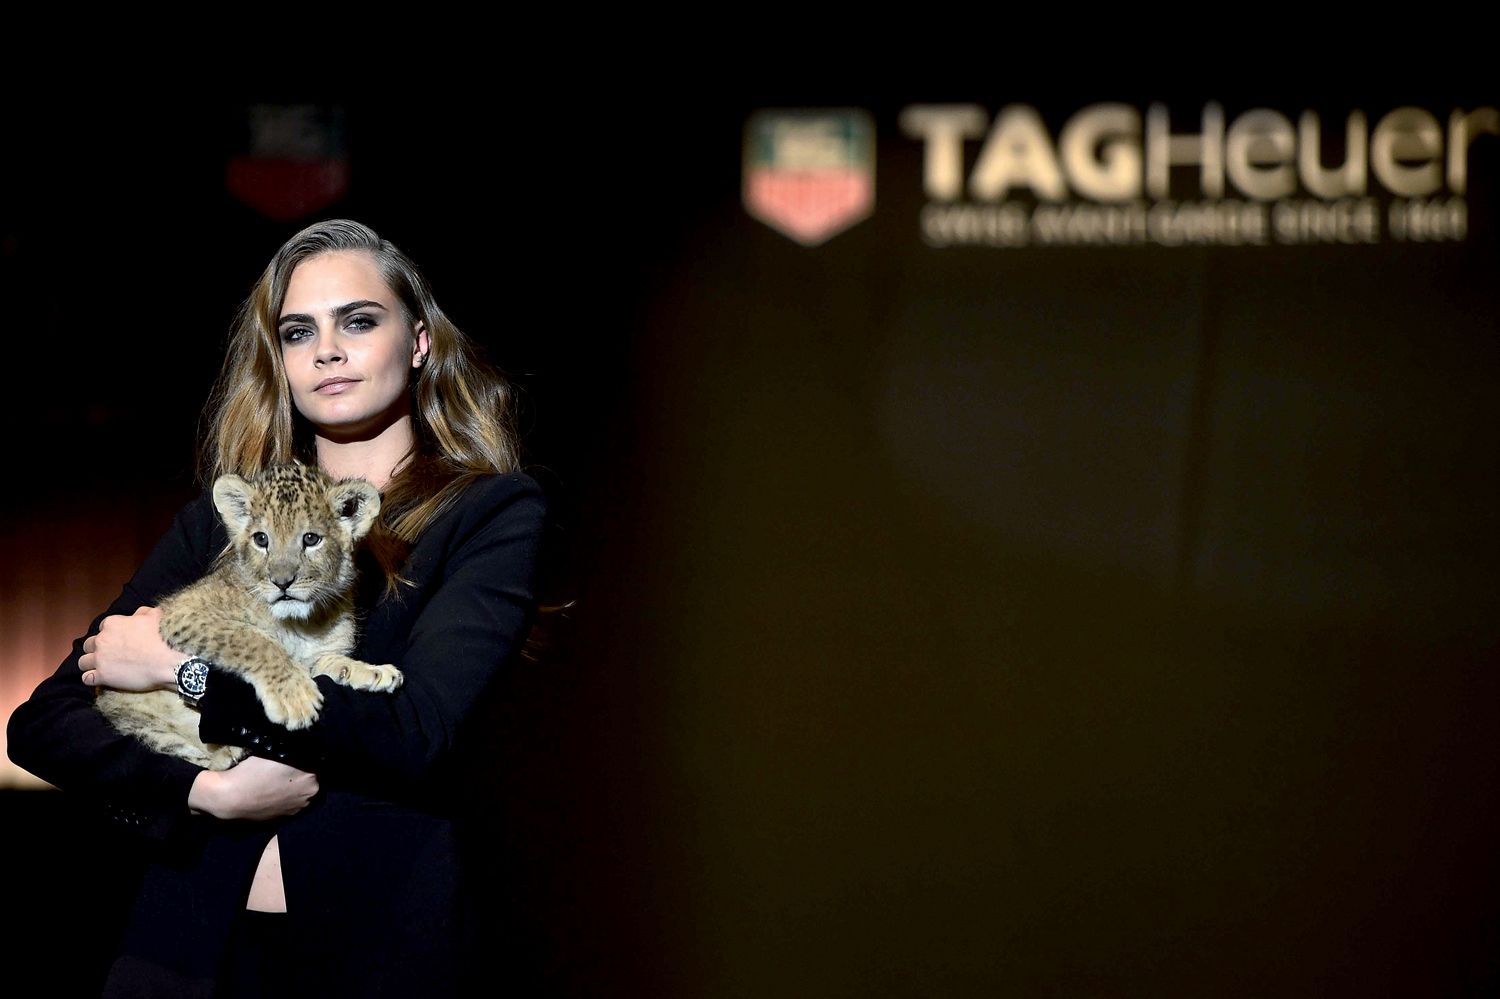 Case Study: Tag Heuer